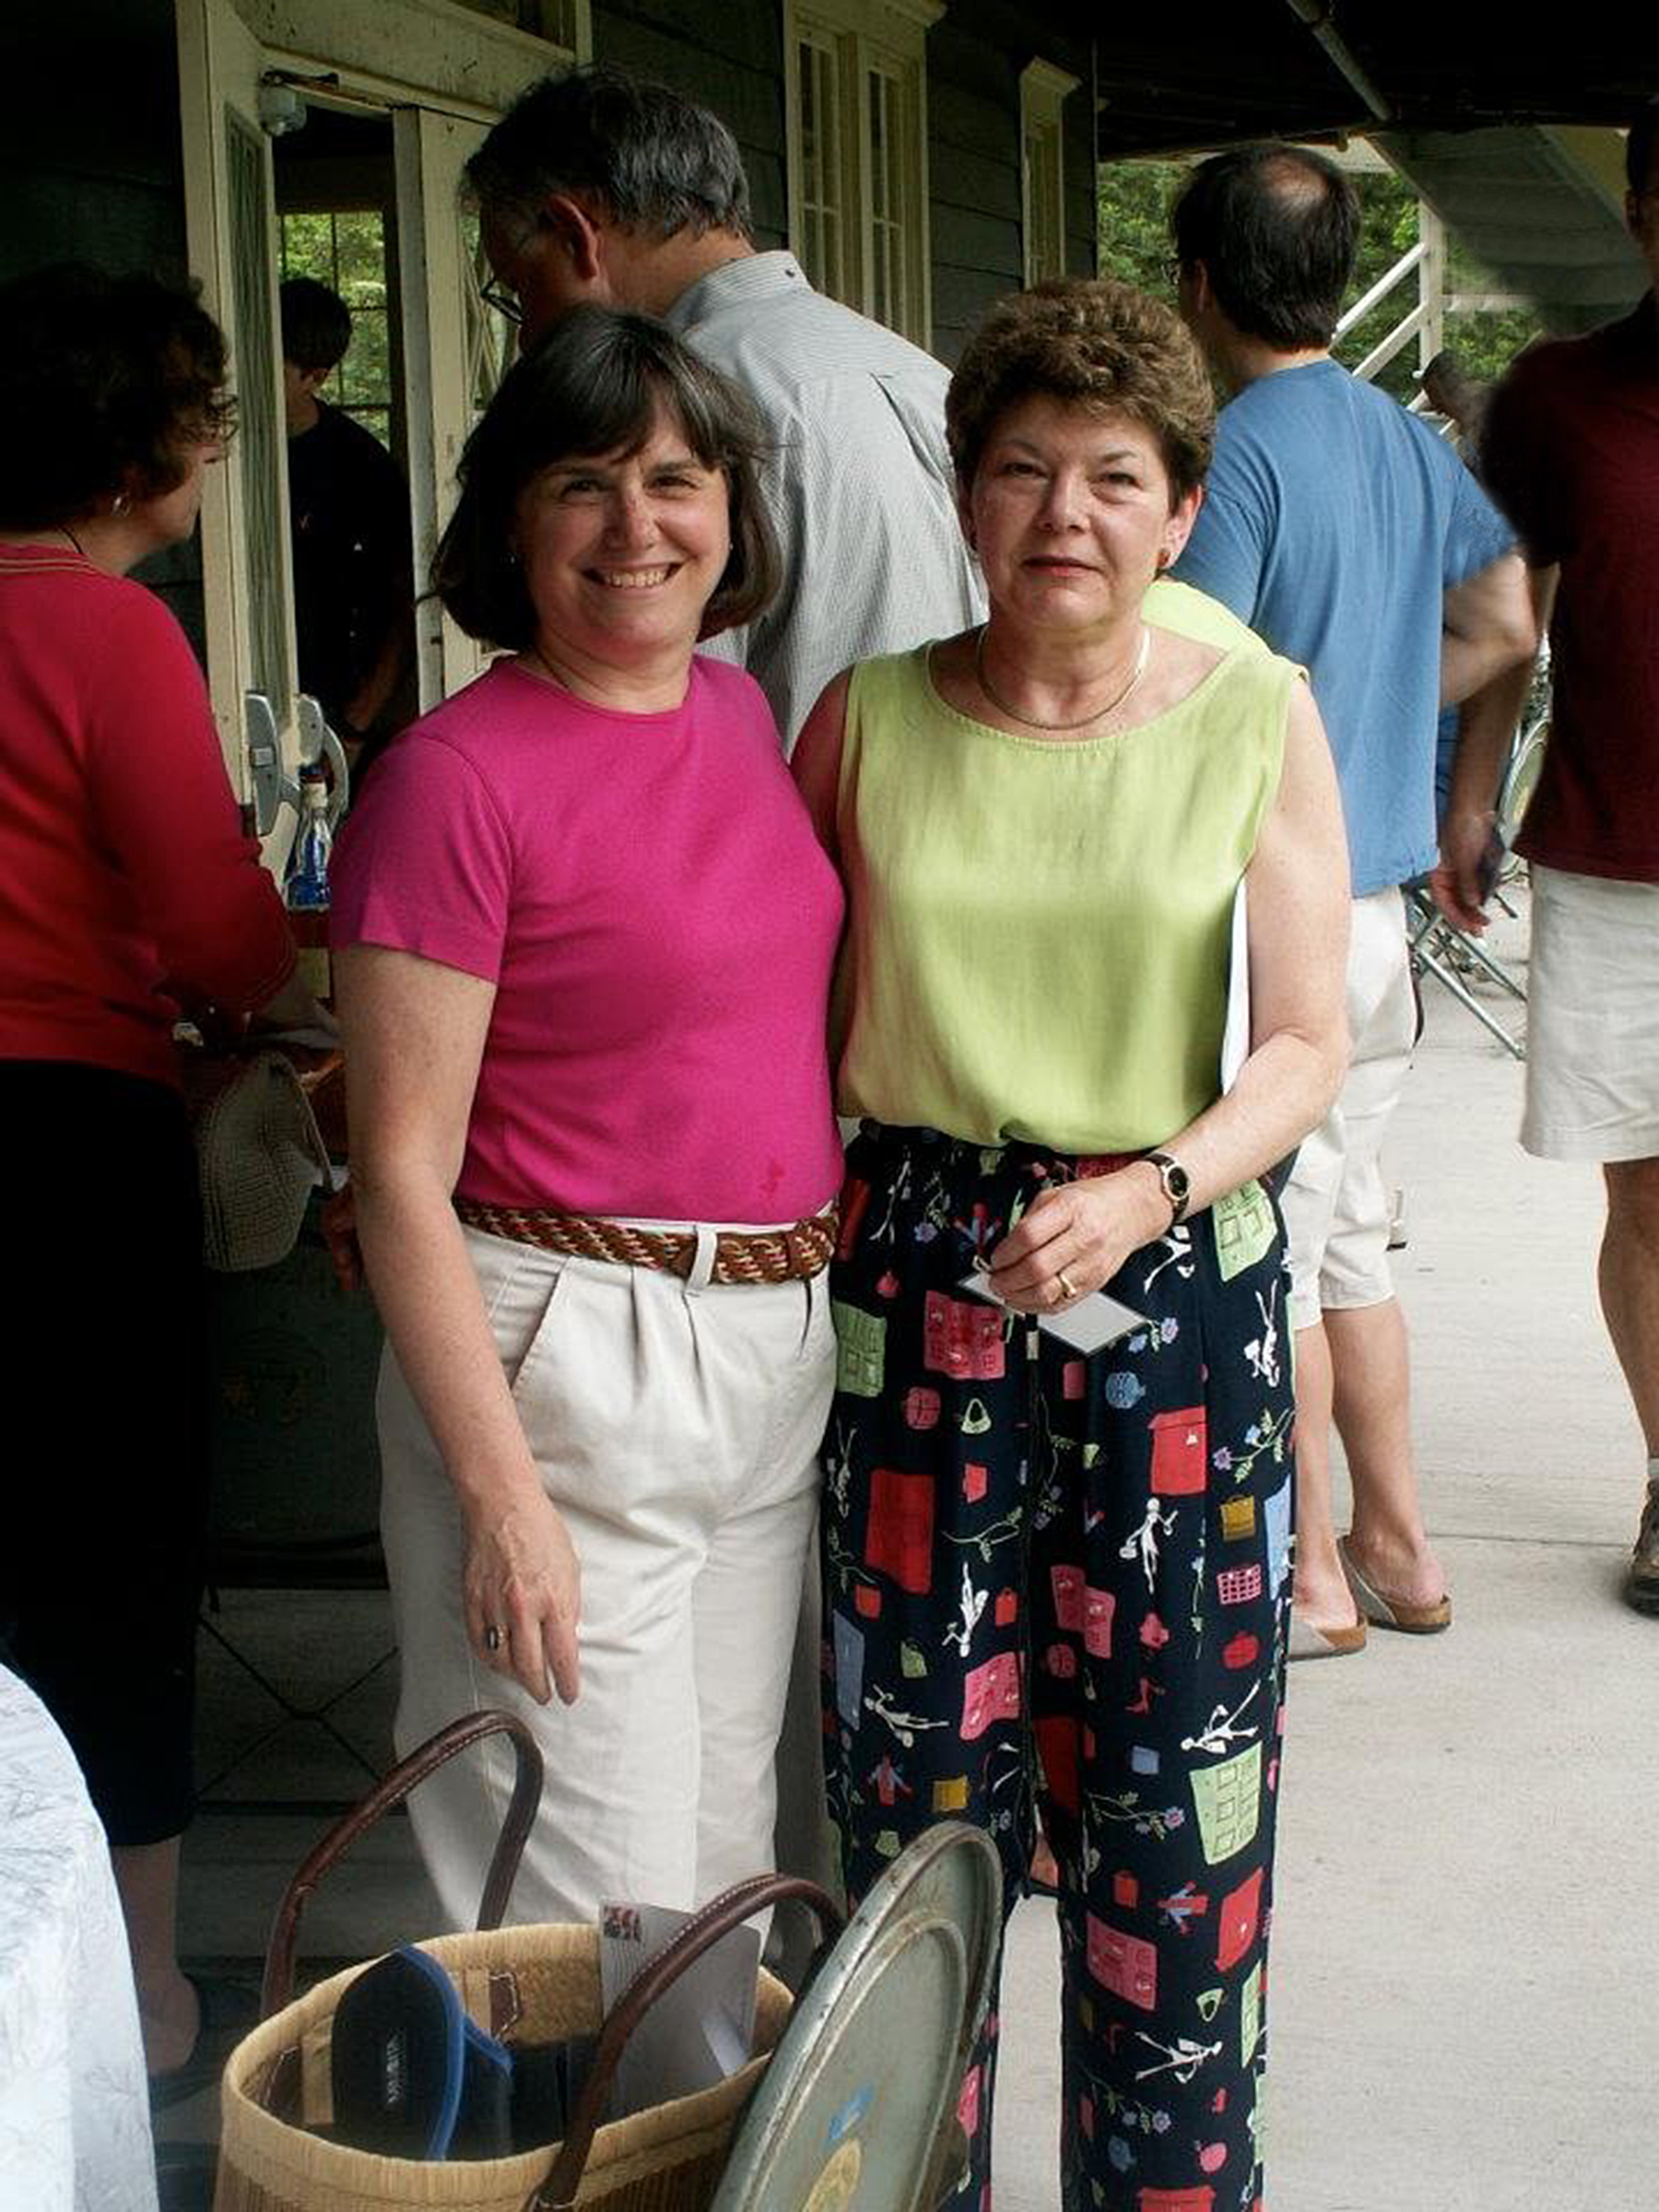 Catherine Bertini with her long time friend Gail Hill Gordon; they have been friends since Teen Age Republicans in 1966.